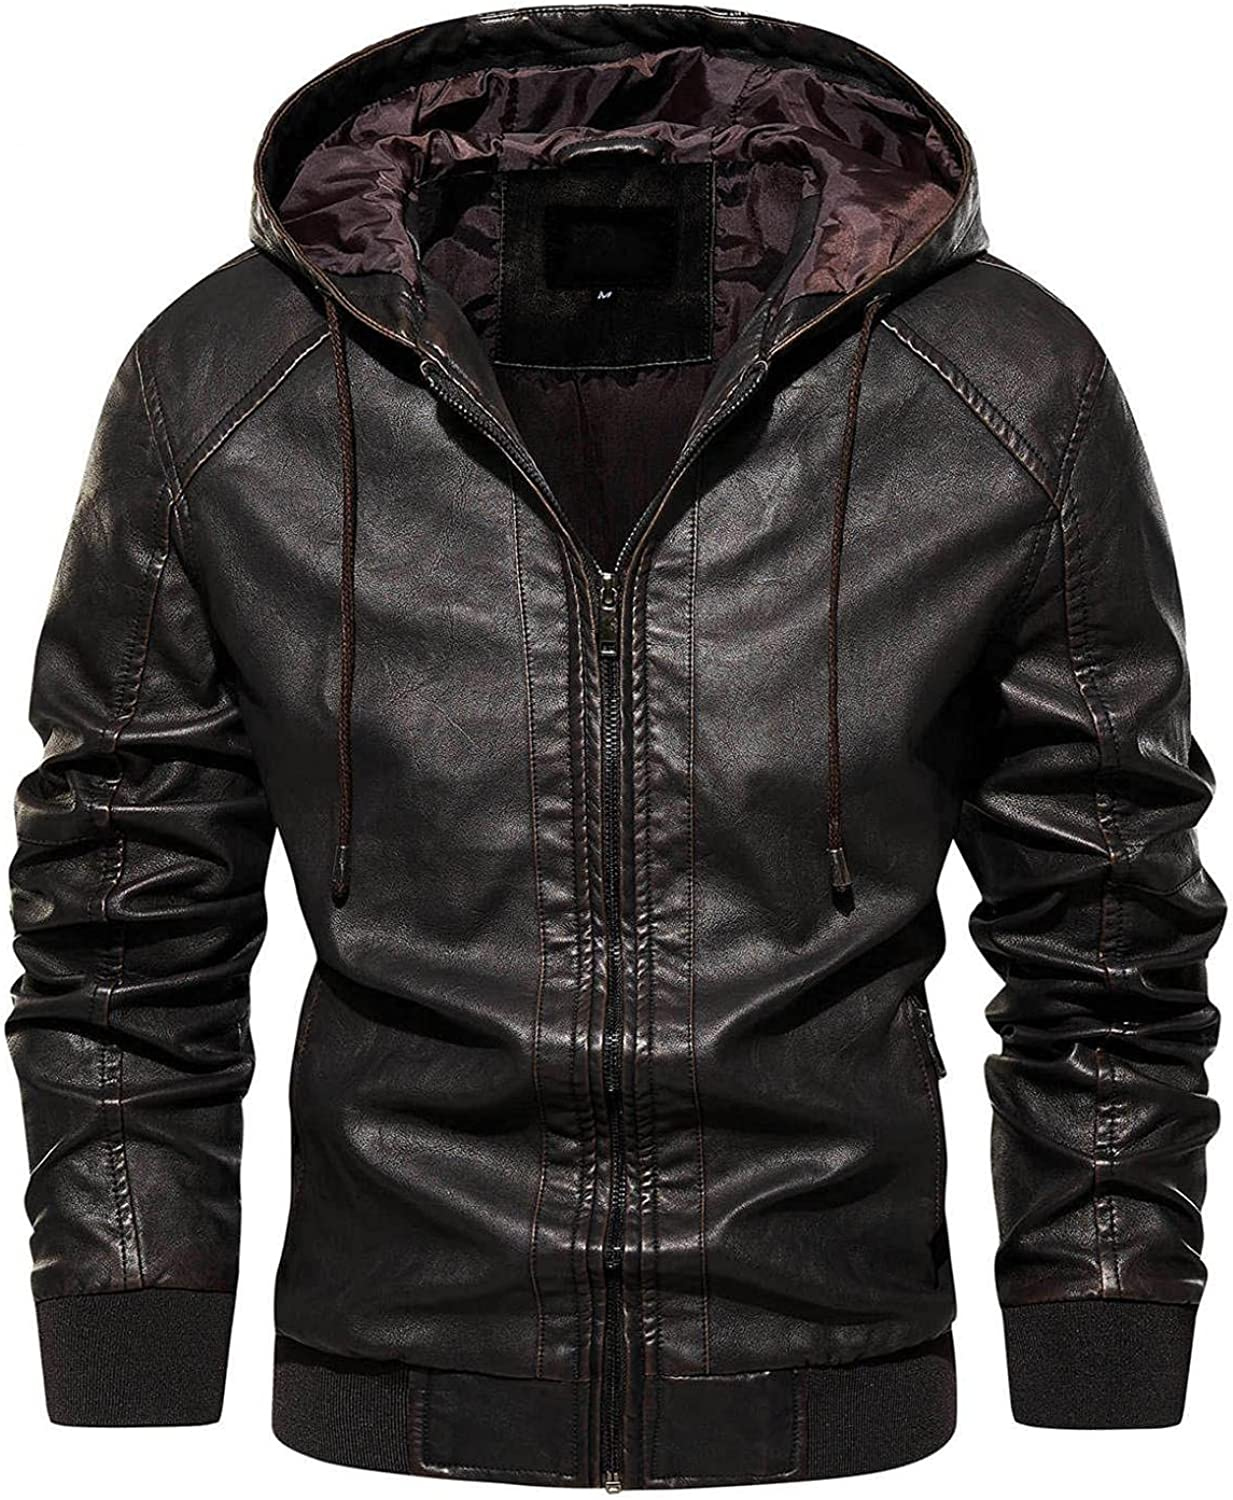 Faux Leather Jackets for Men Full Zipper Hooded Overcoat Vintage Motorcycle Bomber Jacket Solid Warm Winter Coats